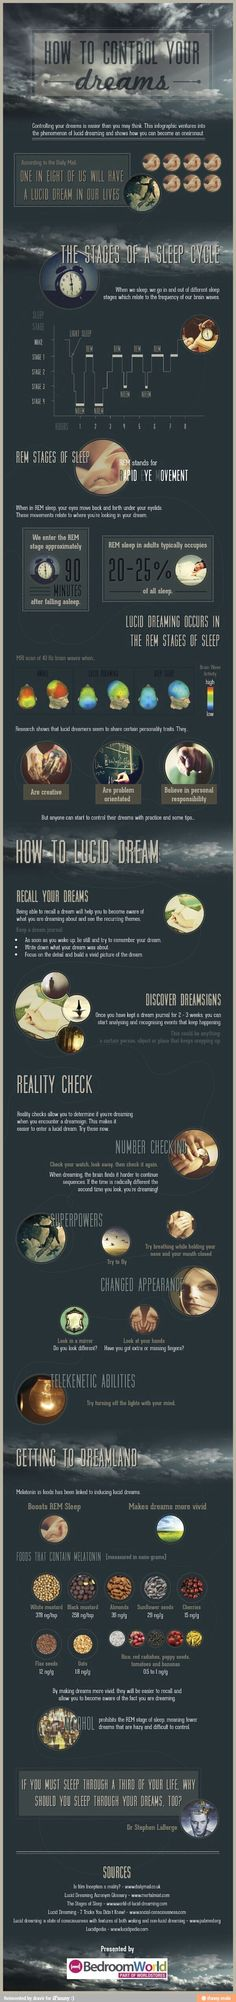 How to control your dreams :)